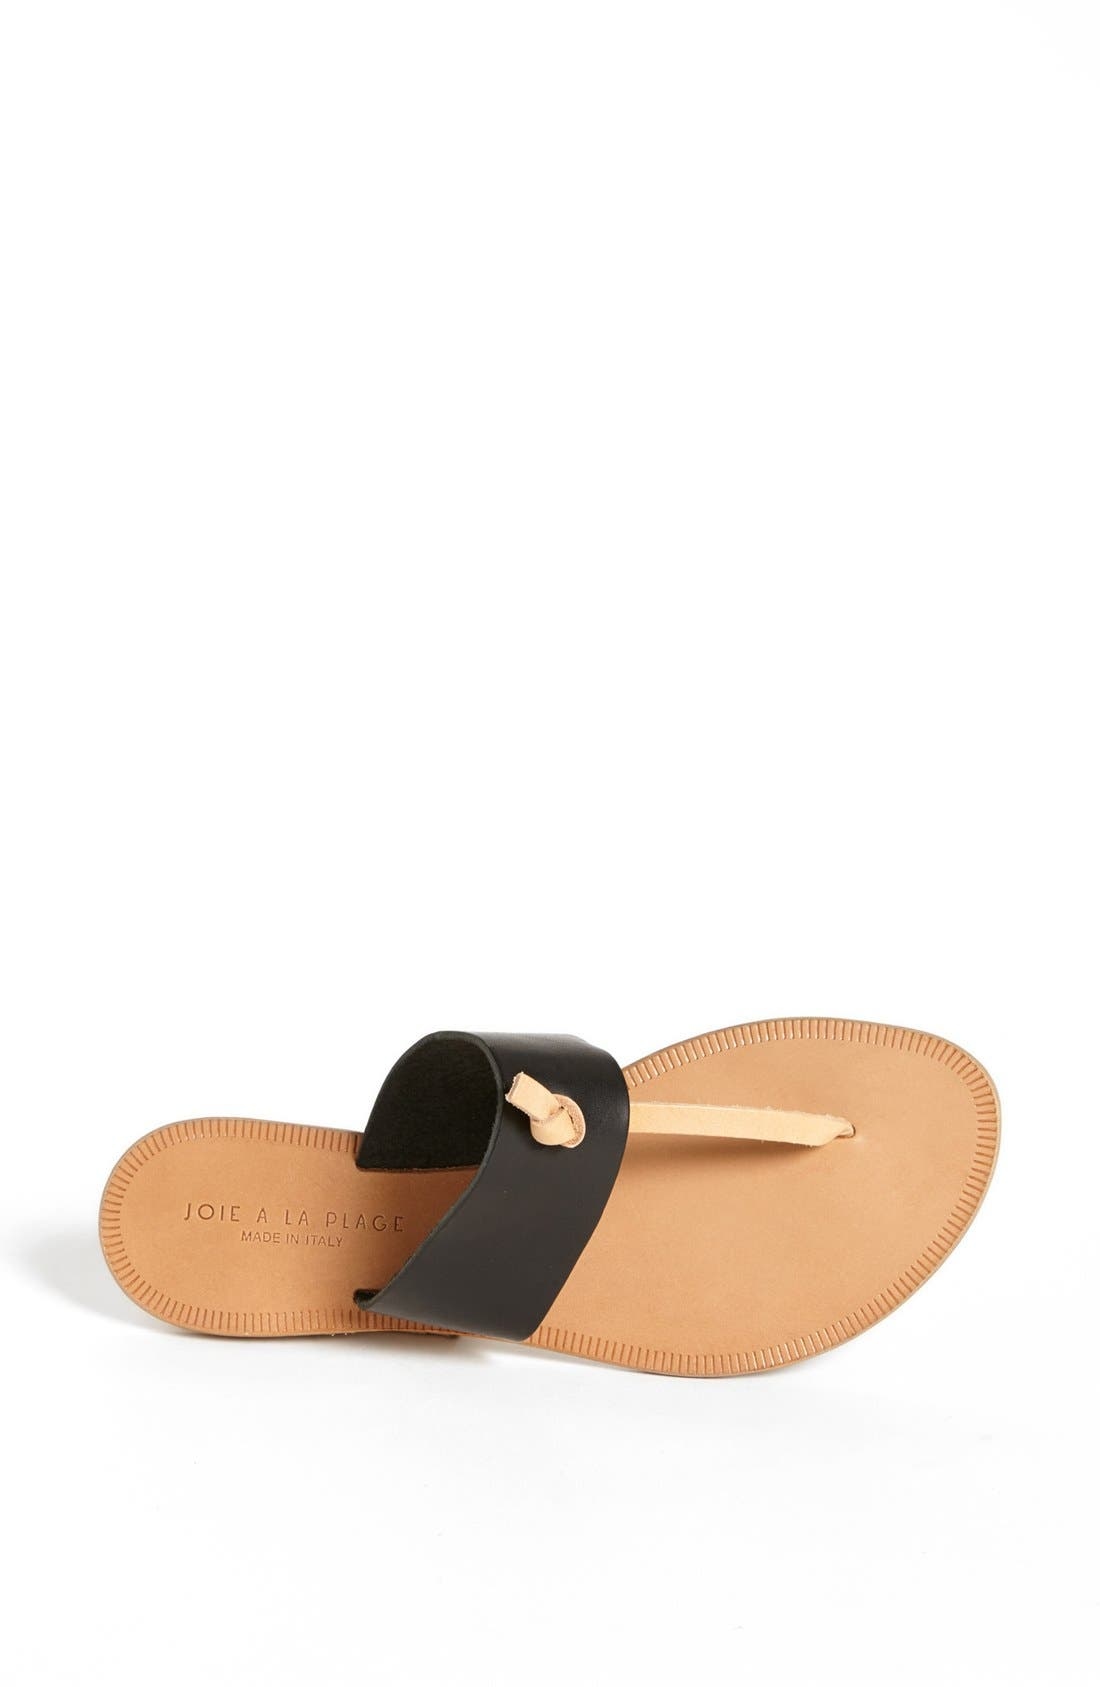 JOIE, a la Plage 'Nice' Flip Flop, Alternate thumbnail 4, color, 001